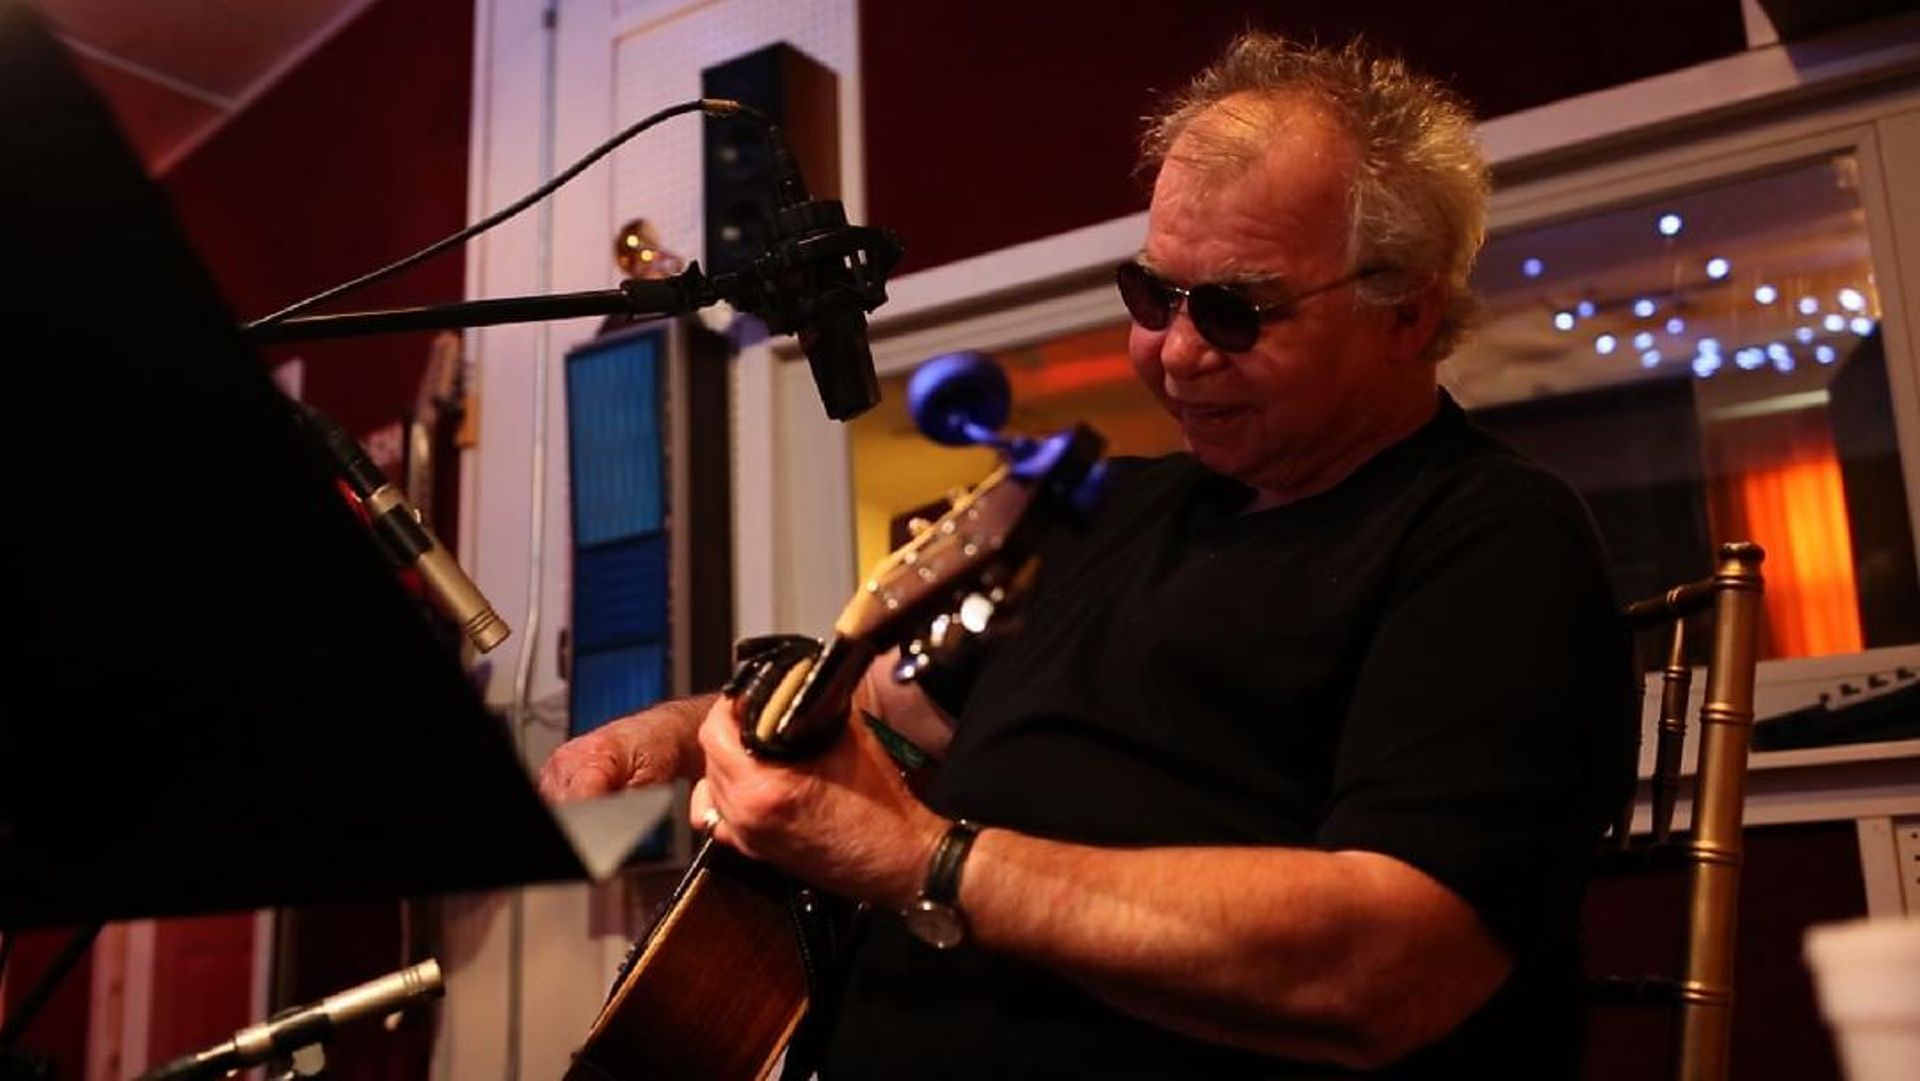 Squidbillies - John Prine: Behind the Scenes